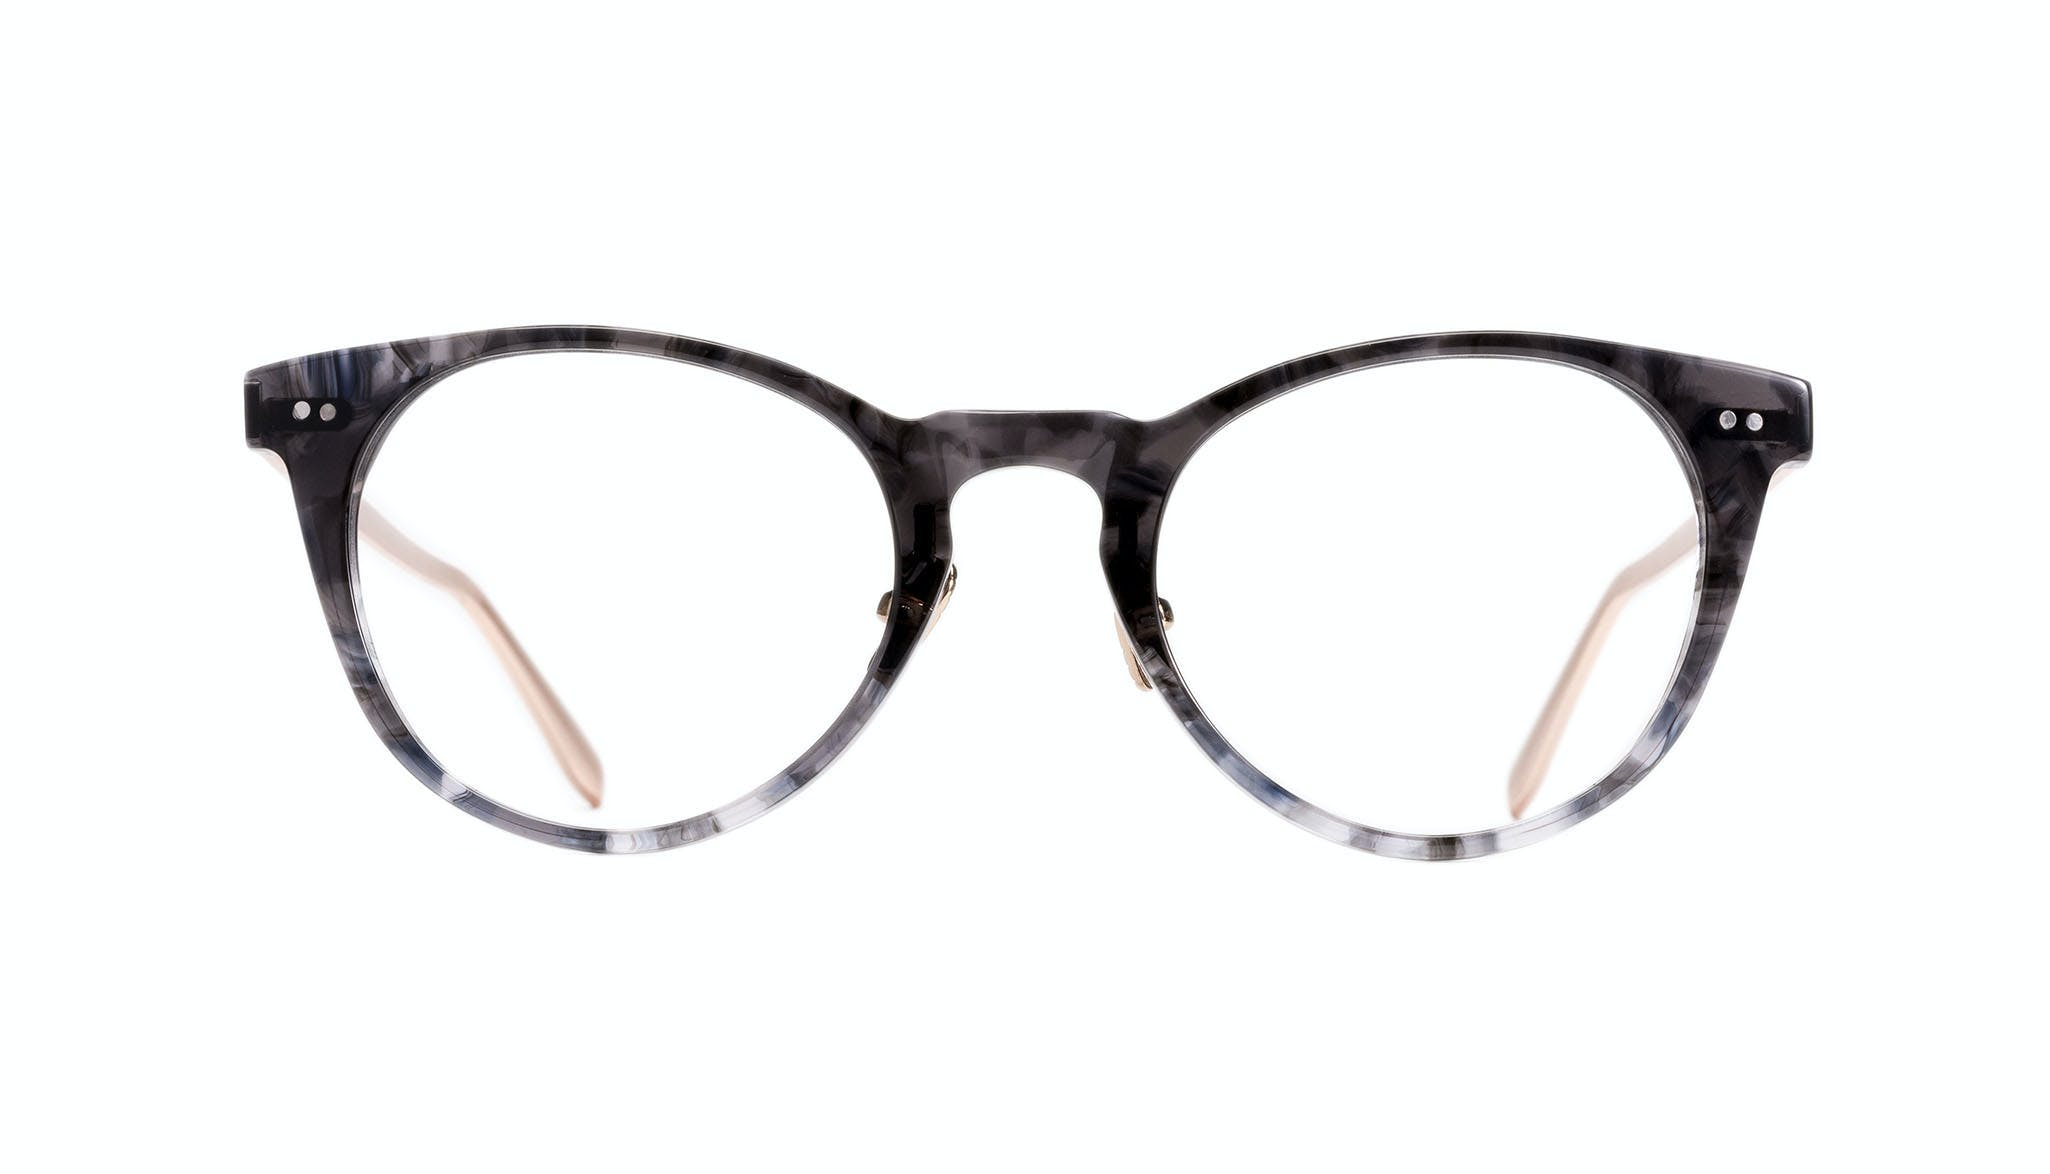 Affordable Fashion Glasses Round Eyeglasses Women Luv Dark Night Front